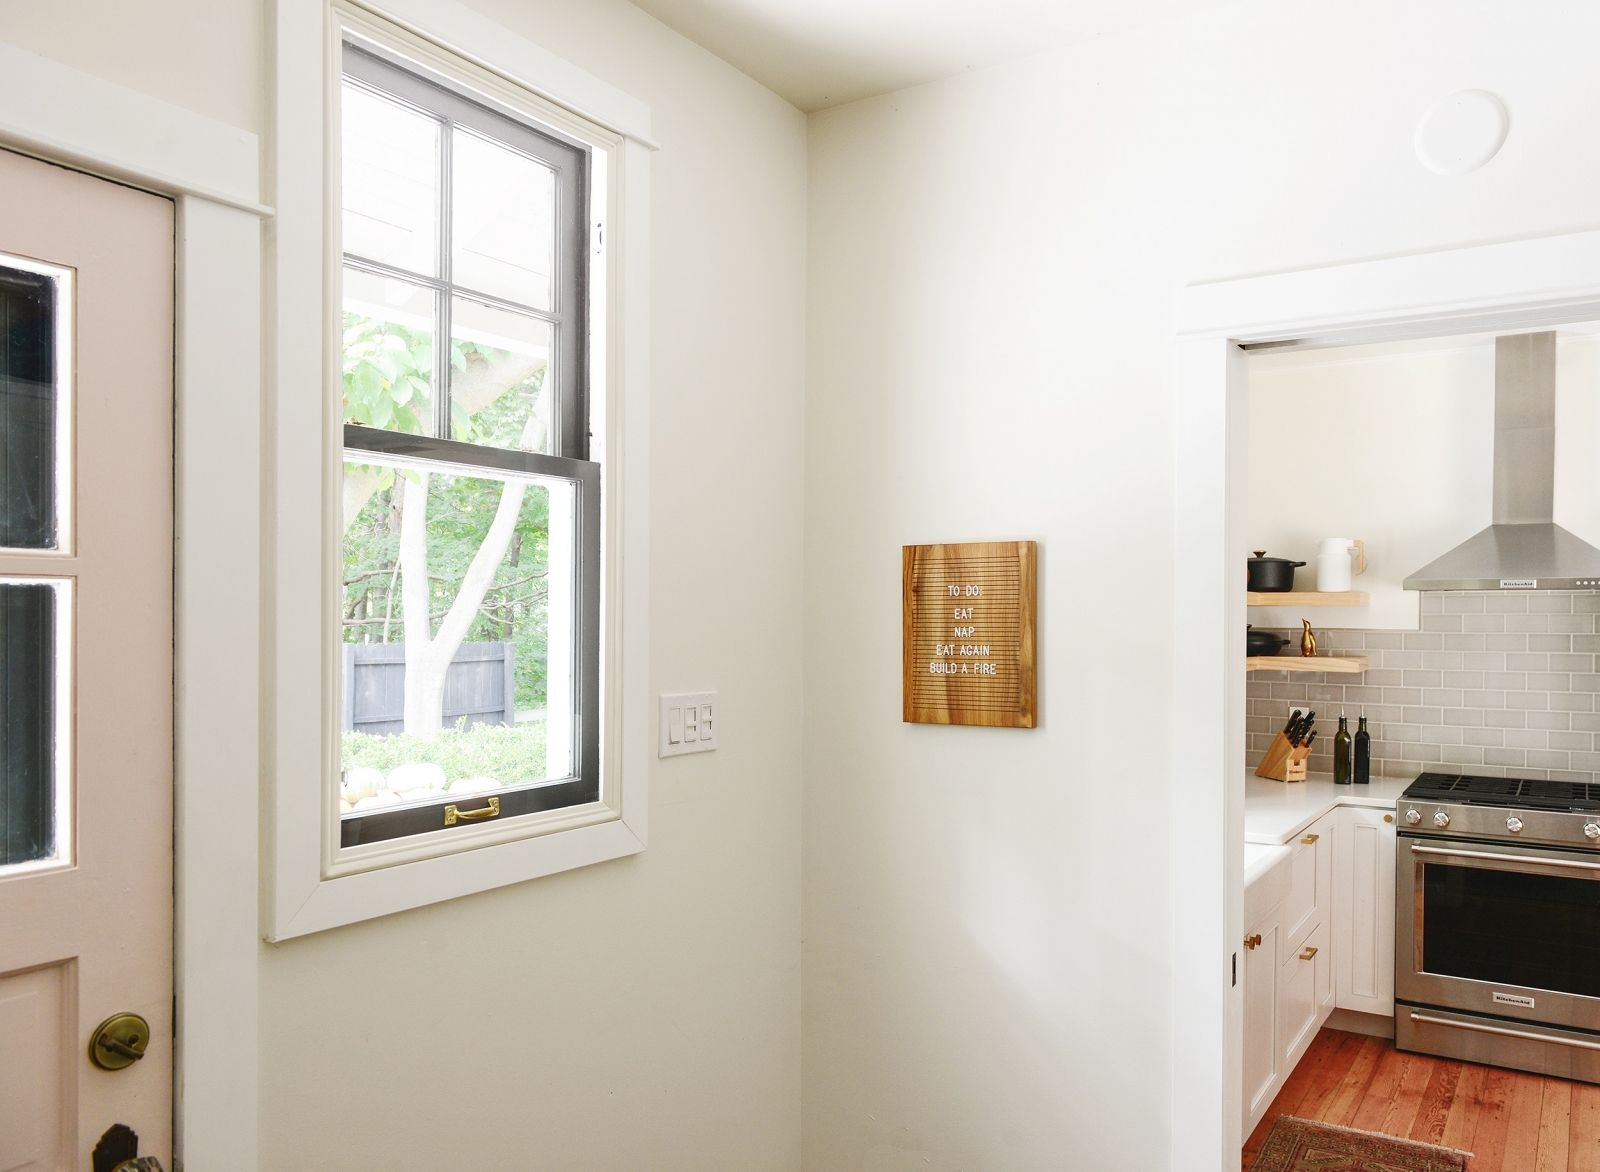 A Storm Window That Works from the Inside, Out #energyefficiency